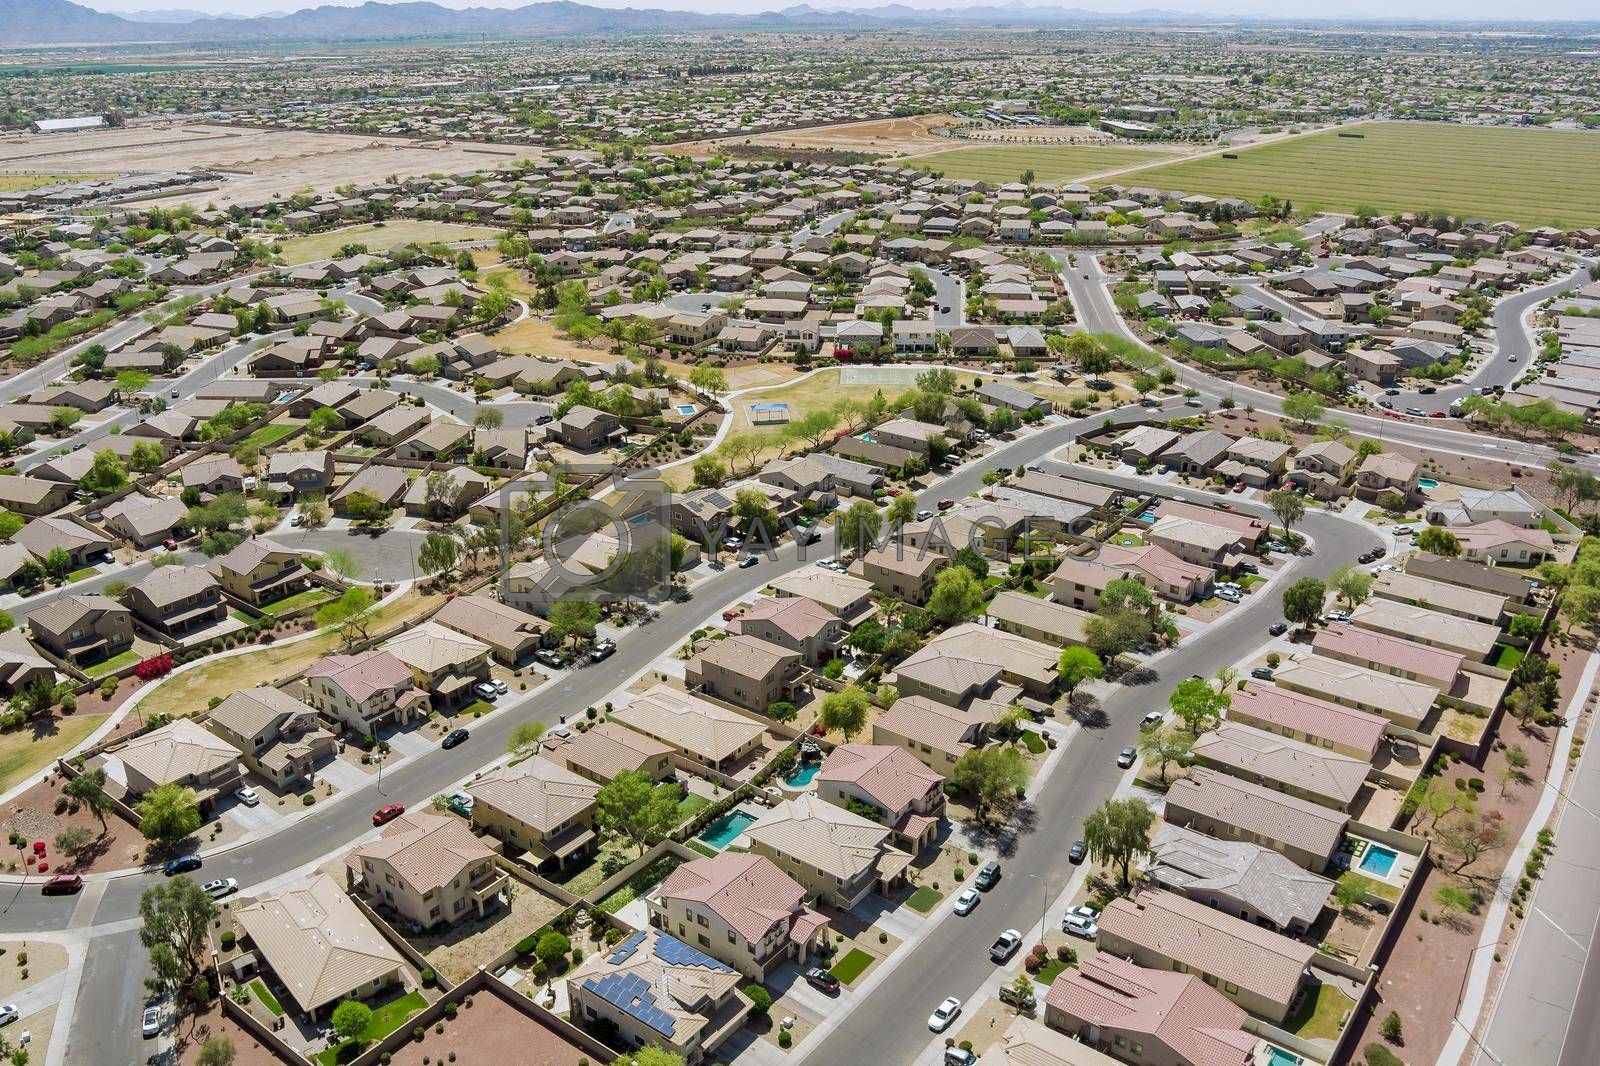 Aerial drone view of small town on desert residential area of a neighborhood with Avondale town Arizona USA